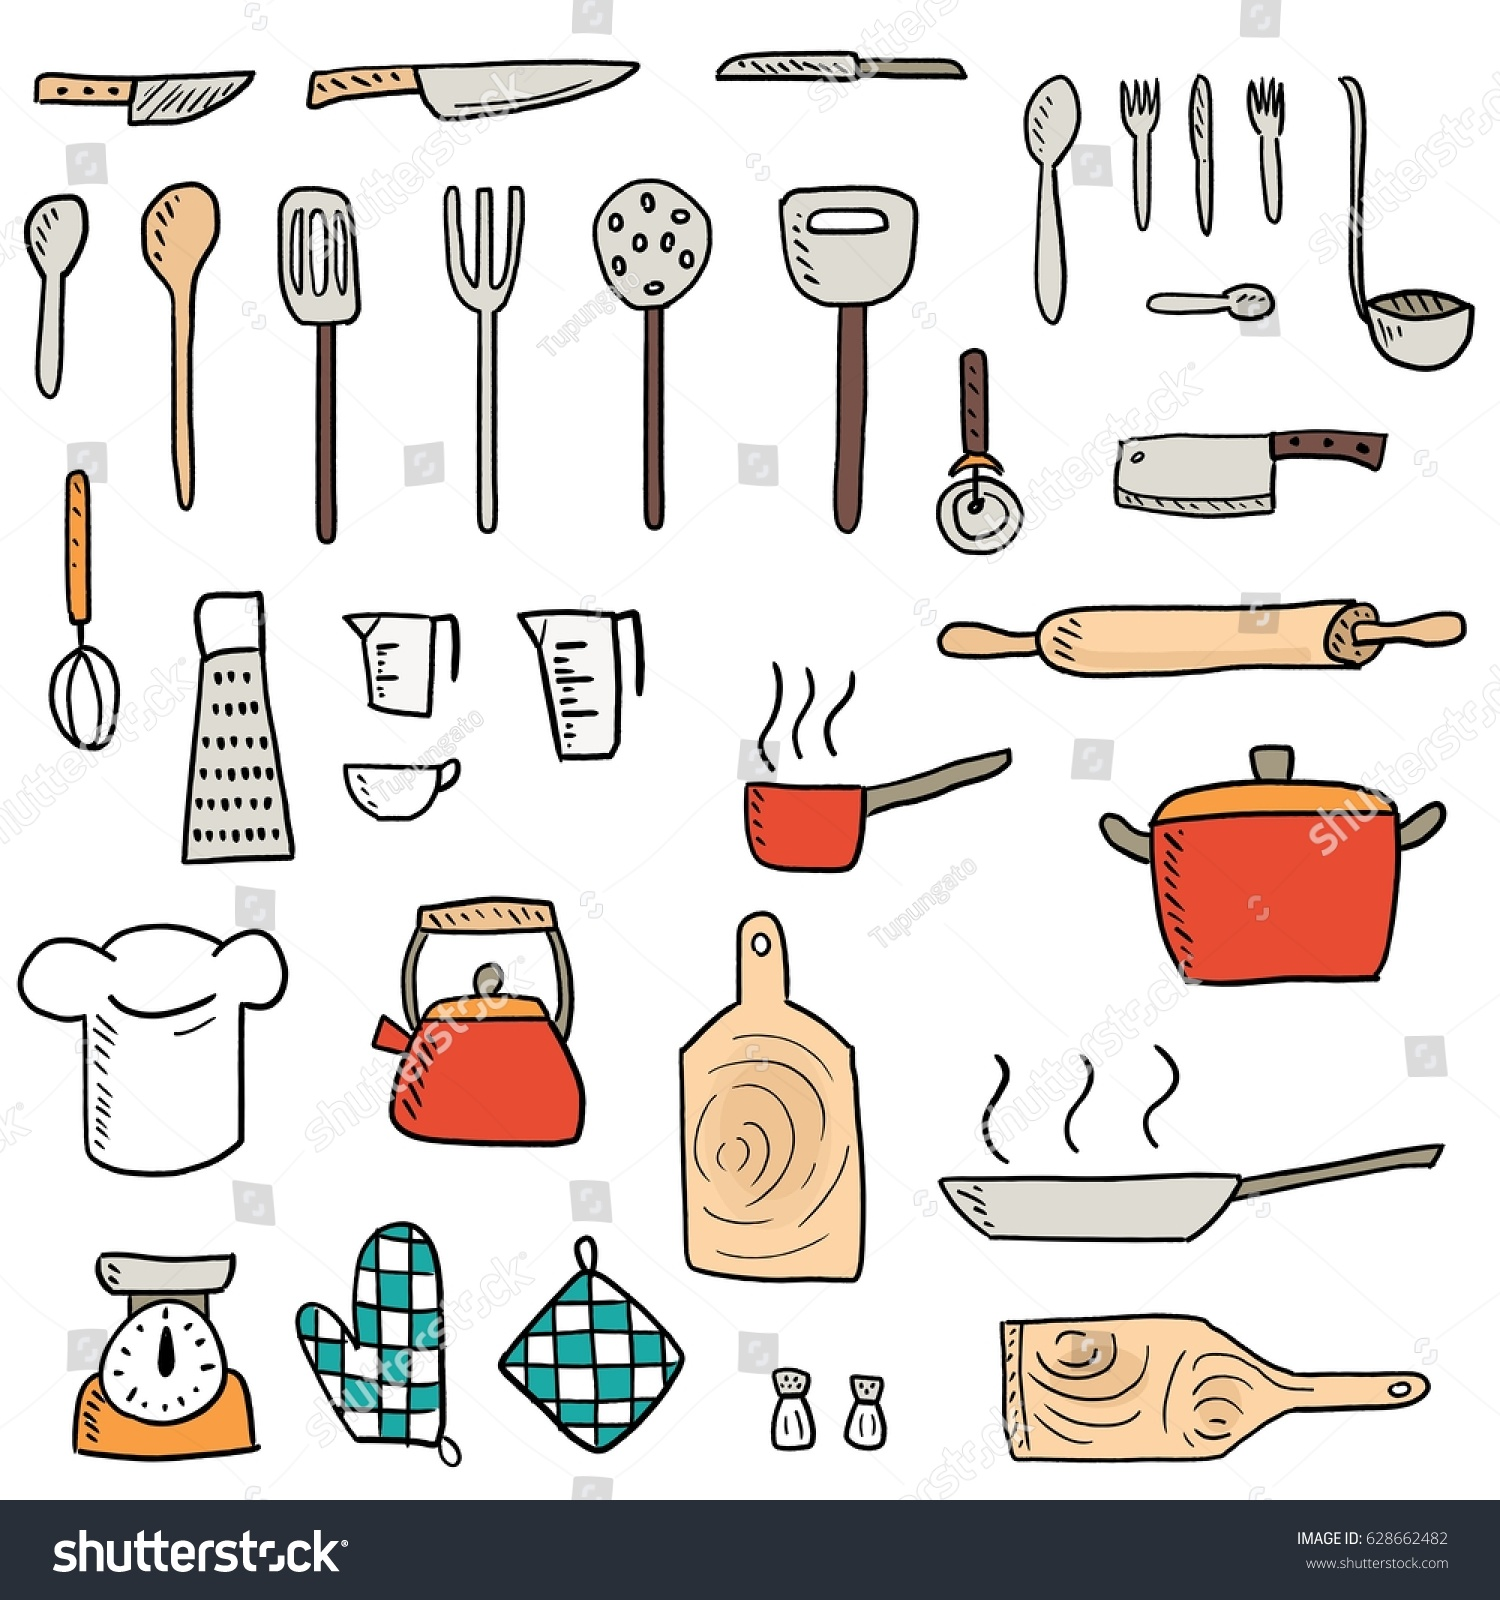 Kitchenware Icons Vector Set Cute Kitchen Stock Vector 628662482 ...